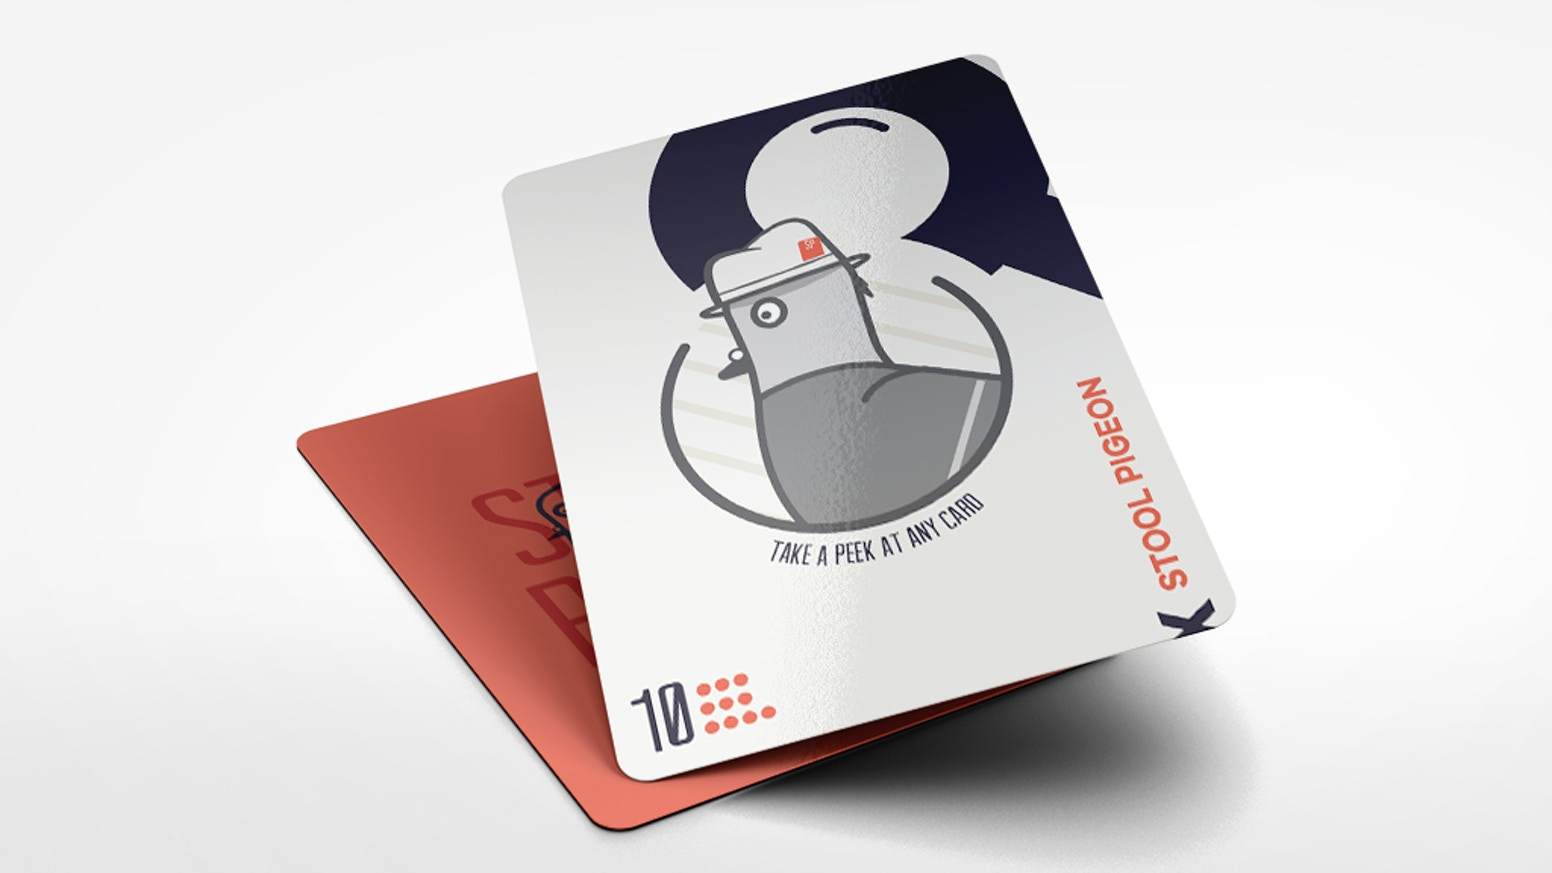 A tactical card game where you work to eliminate your mafia family  & make life harder for you rivals by adding to their mafia family.